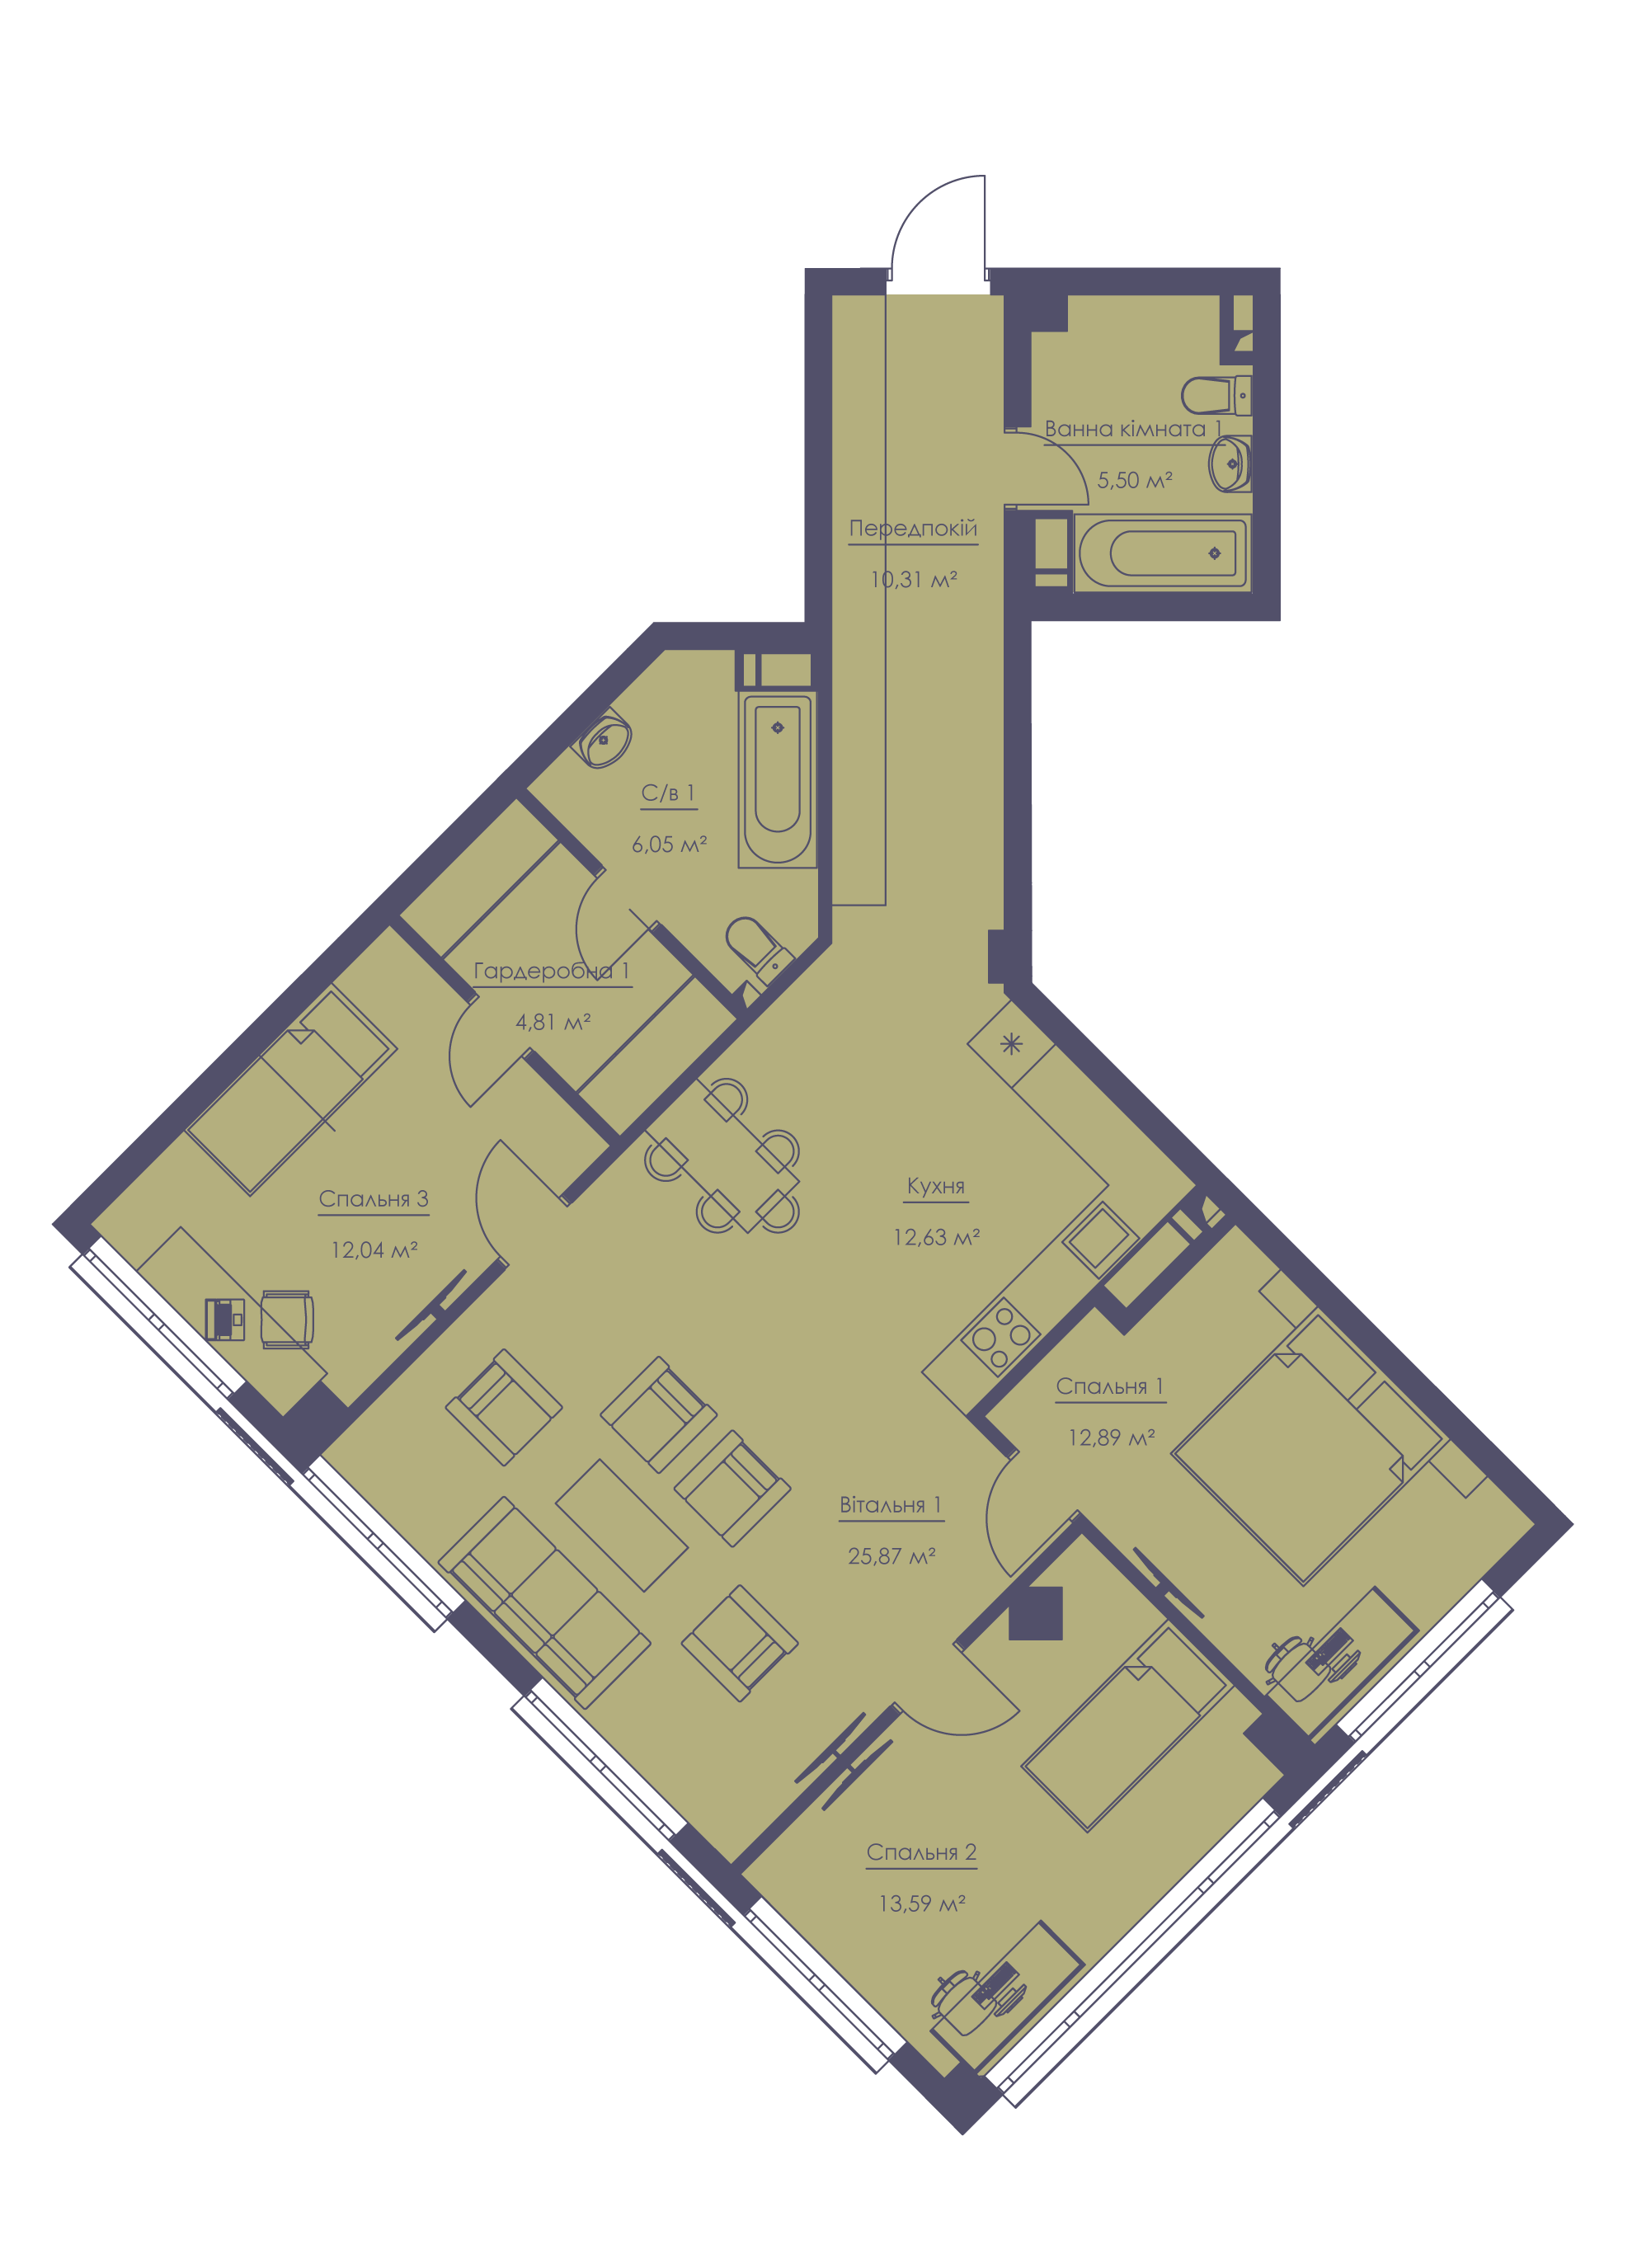 Apartment layout KV_26_2.4a_1_1_2-1